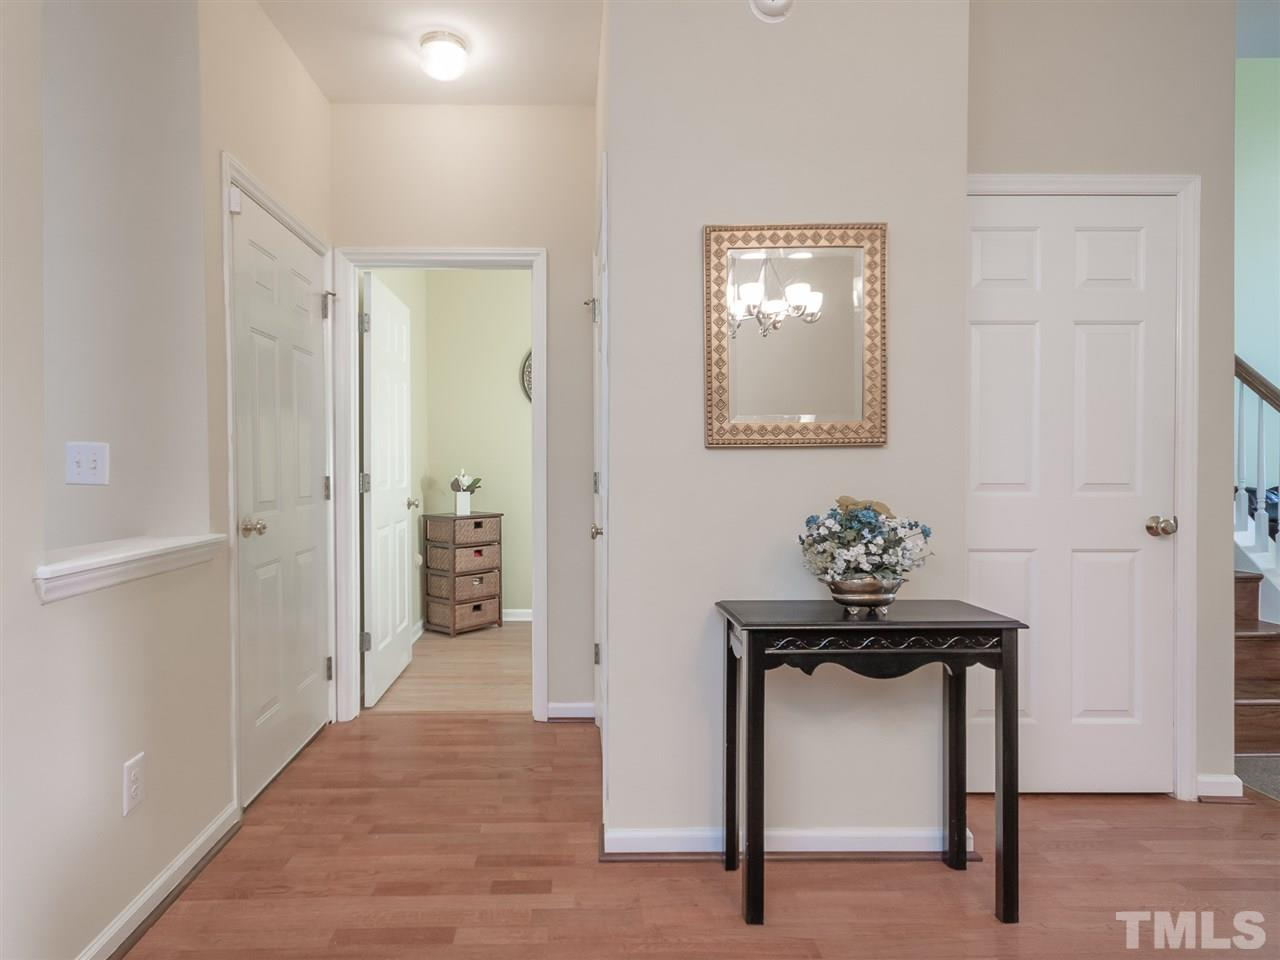 This hallway leads to the first floor half bath that is huge! A coat closet and door to the garage! And there is another closet as well! Yes, this home has it all!